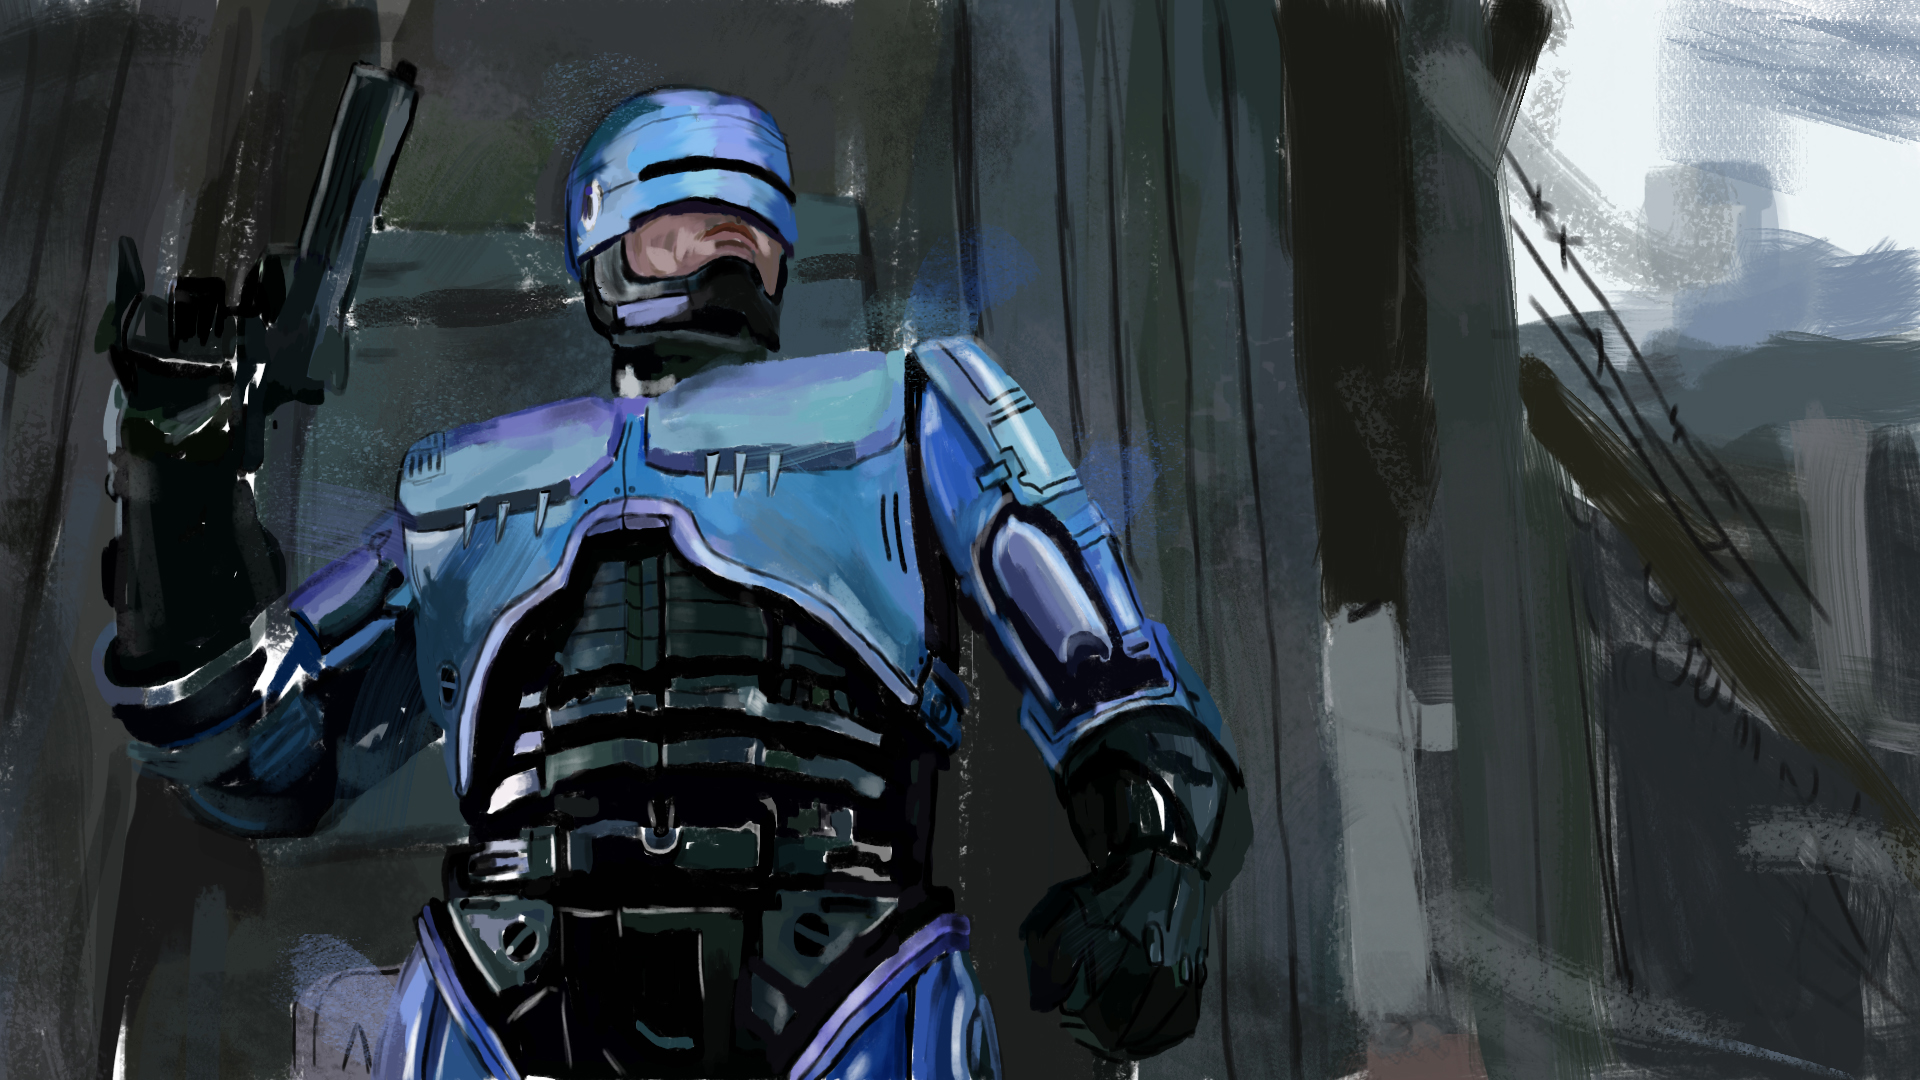 The 90's ROBOCOP